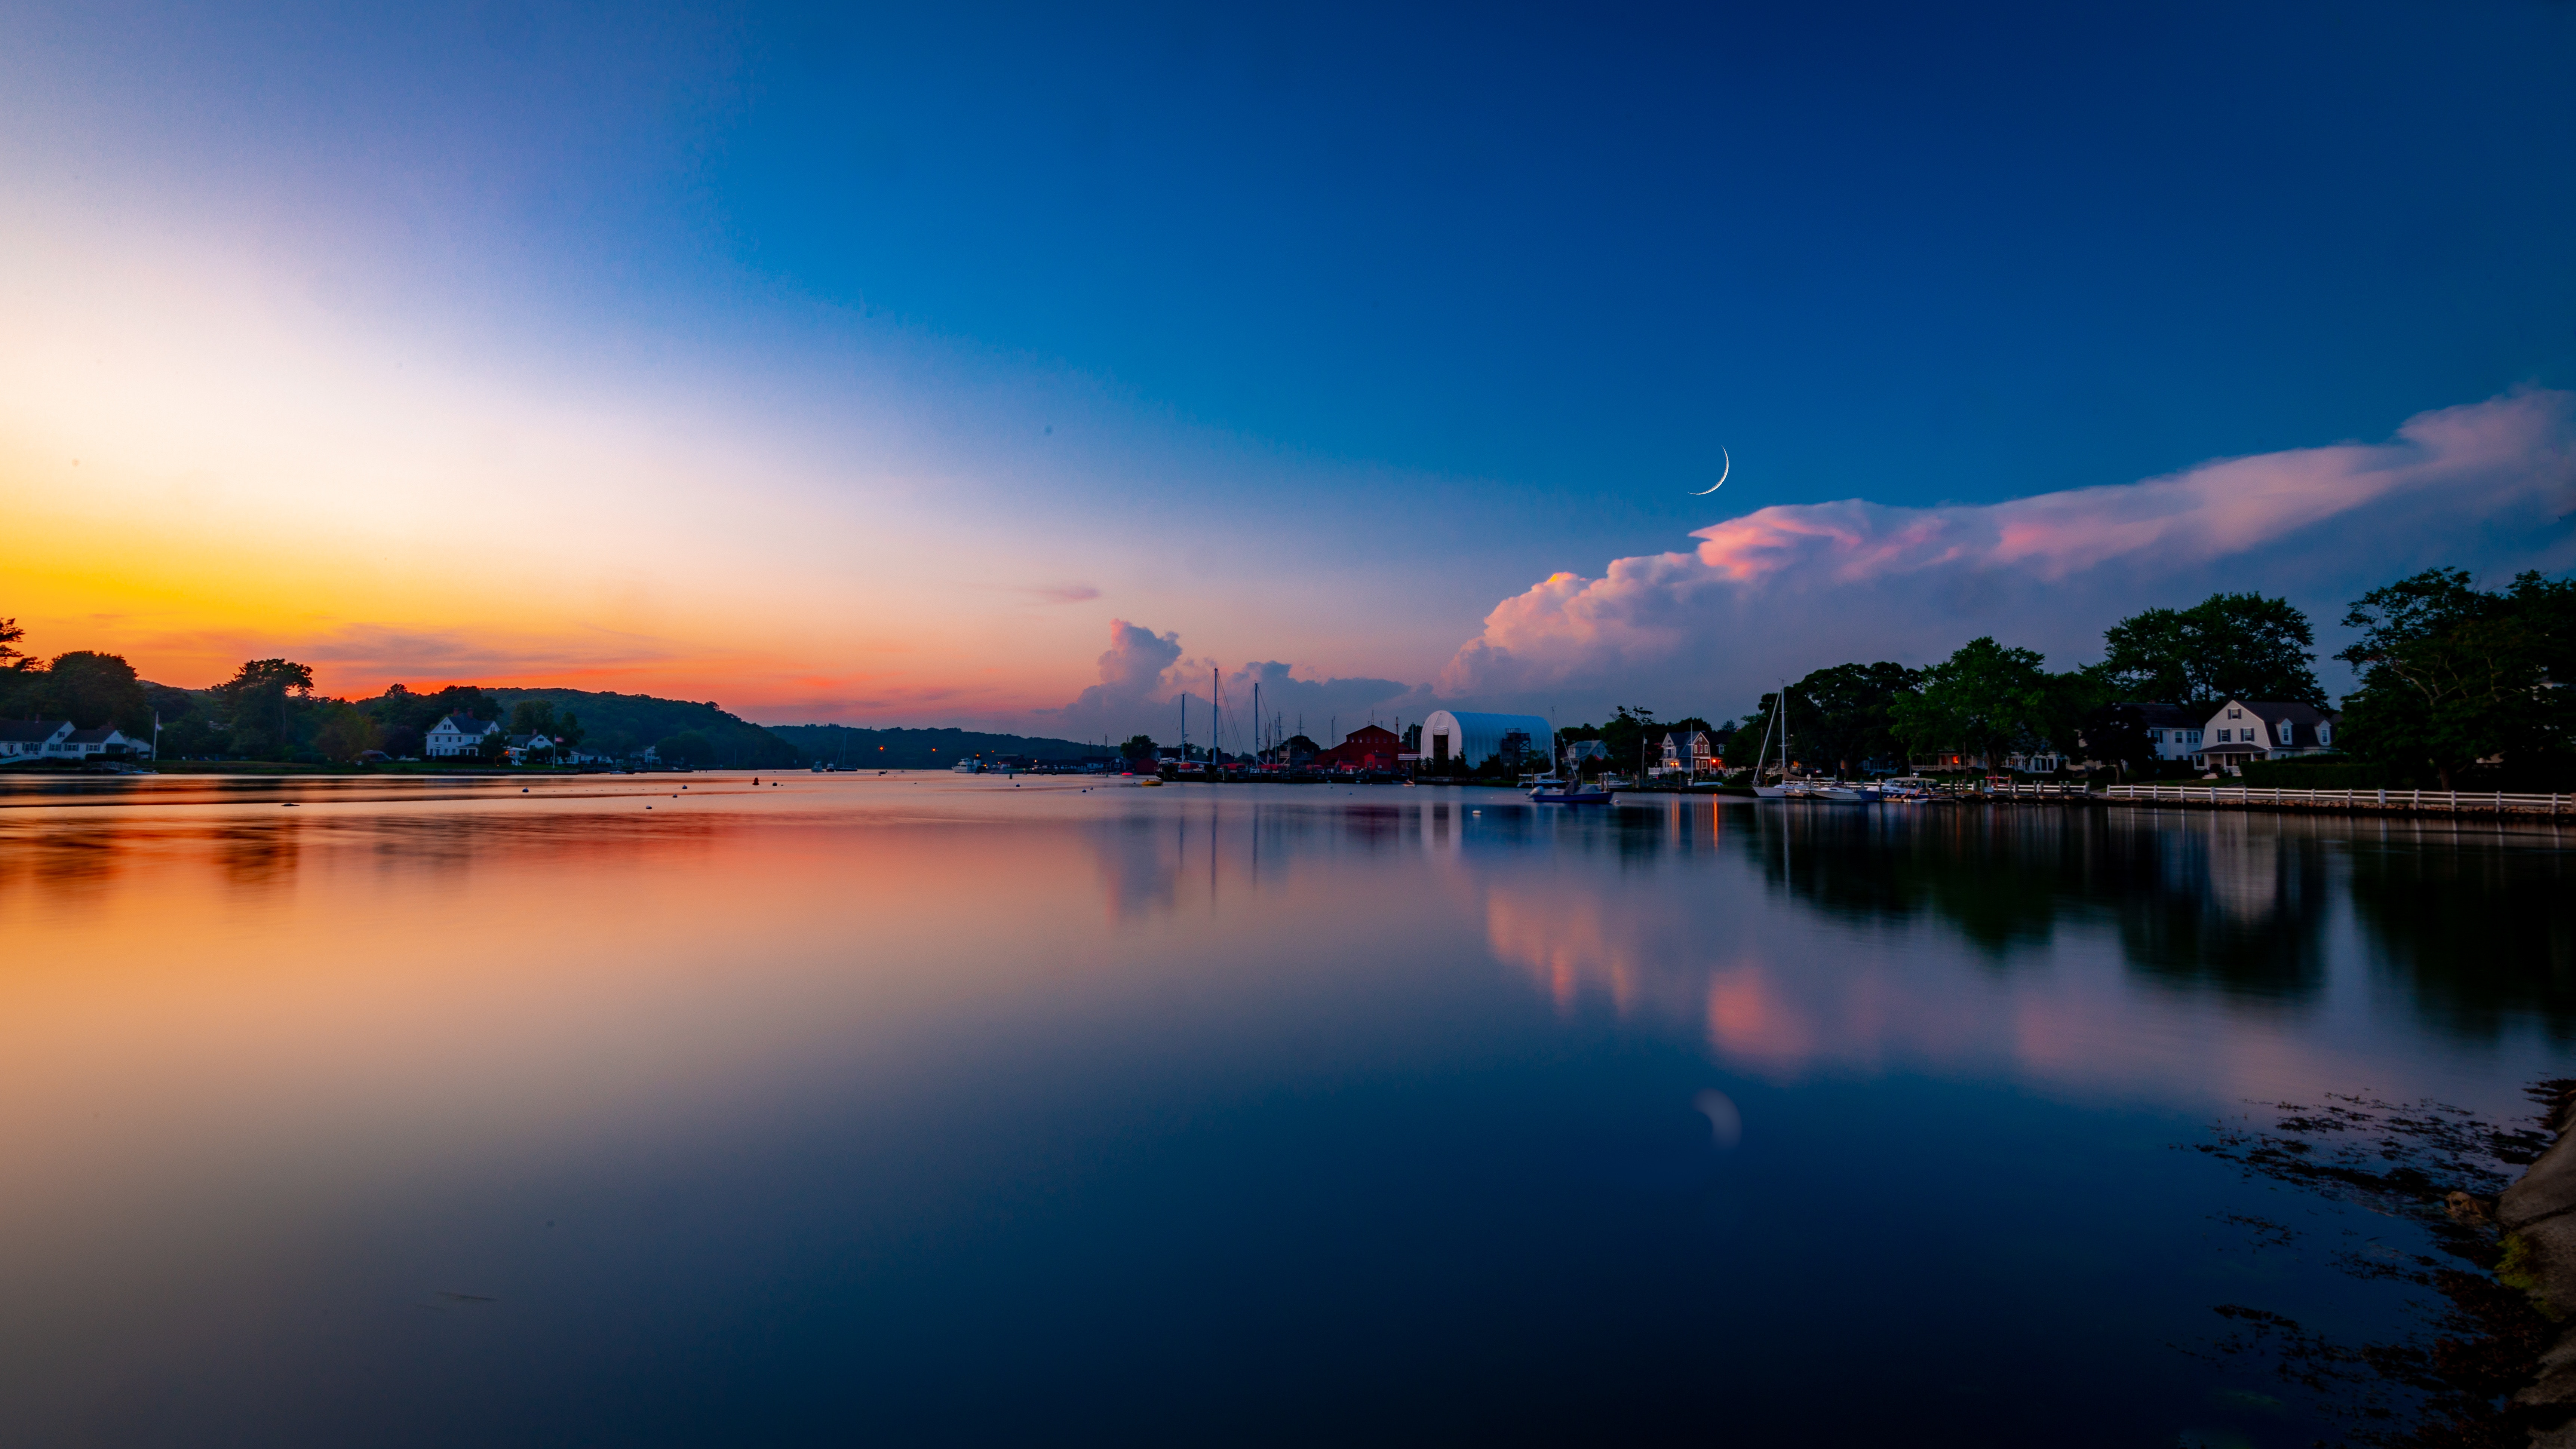 78392 free wallpaper 1080x2400 for phone, download images Nature, Sunset, Twilight, Moon, Lake, Dusk, Buildings 1080x2400 for mobile